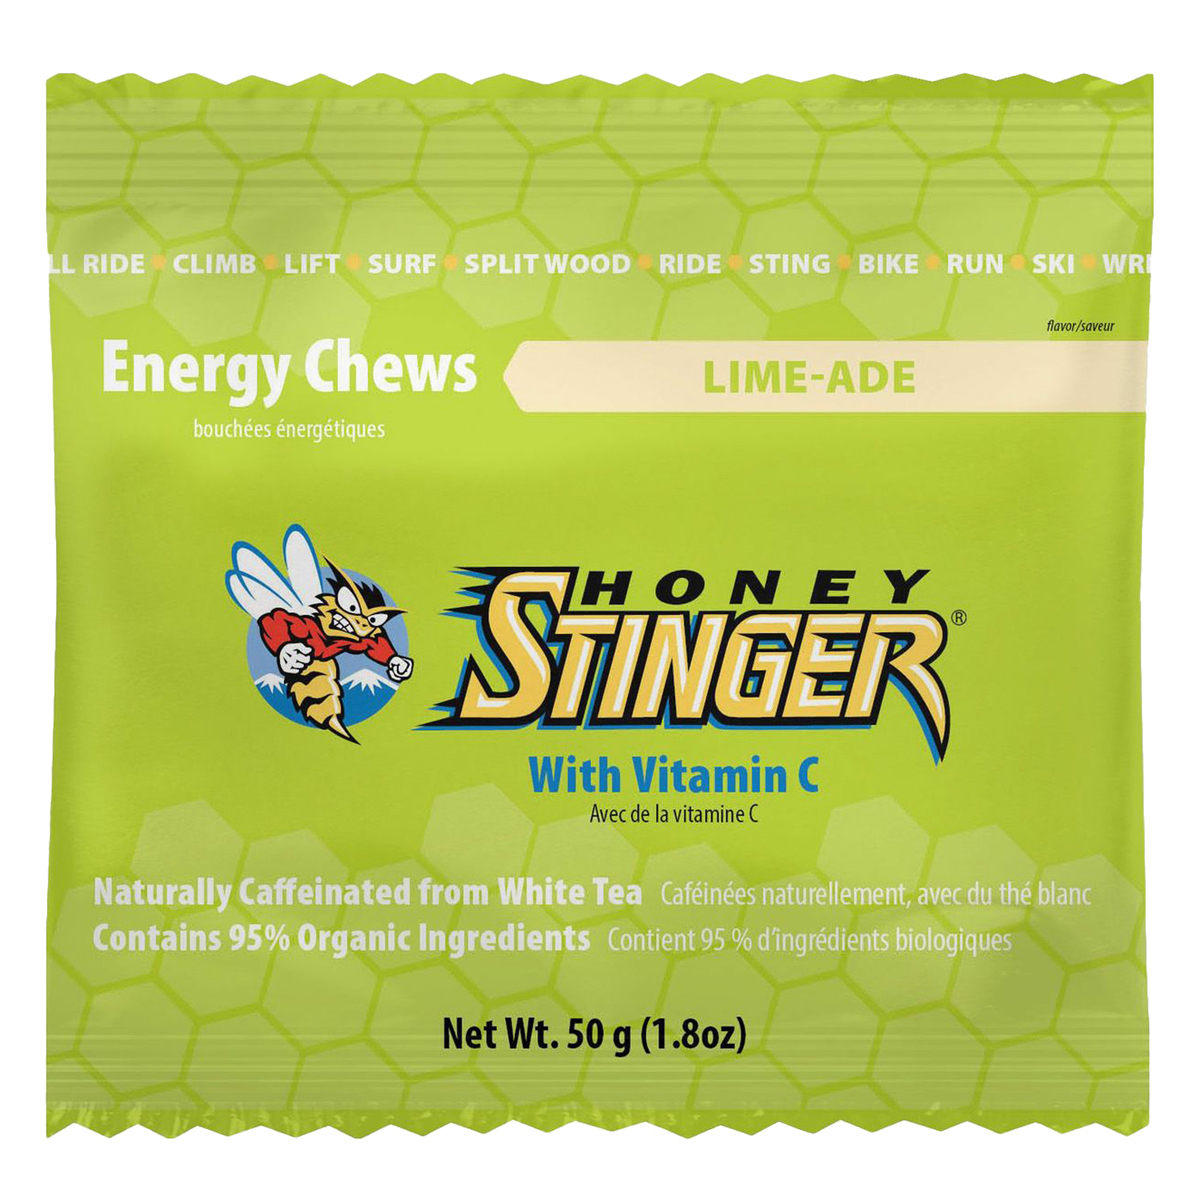 Honey Stinger Organic Energy Chews: Limeade; Box of 12